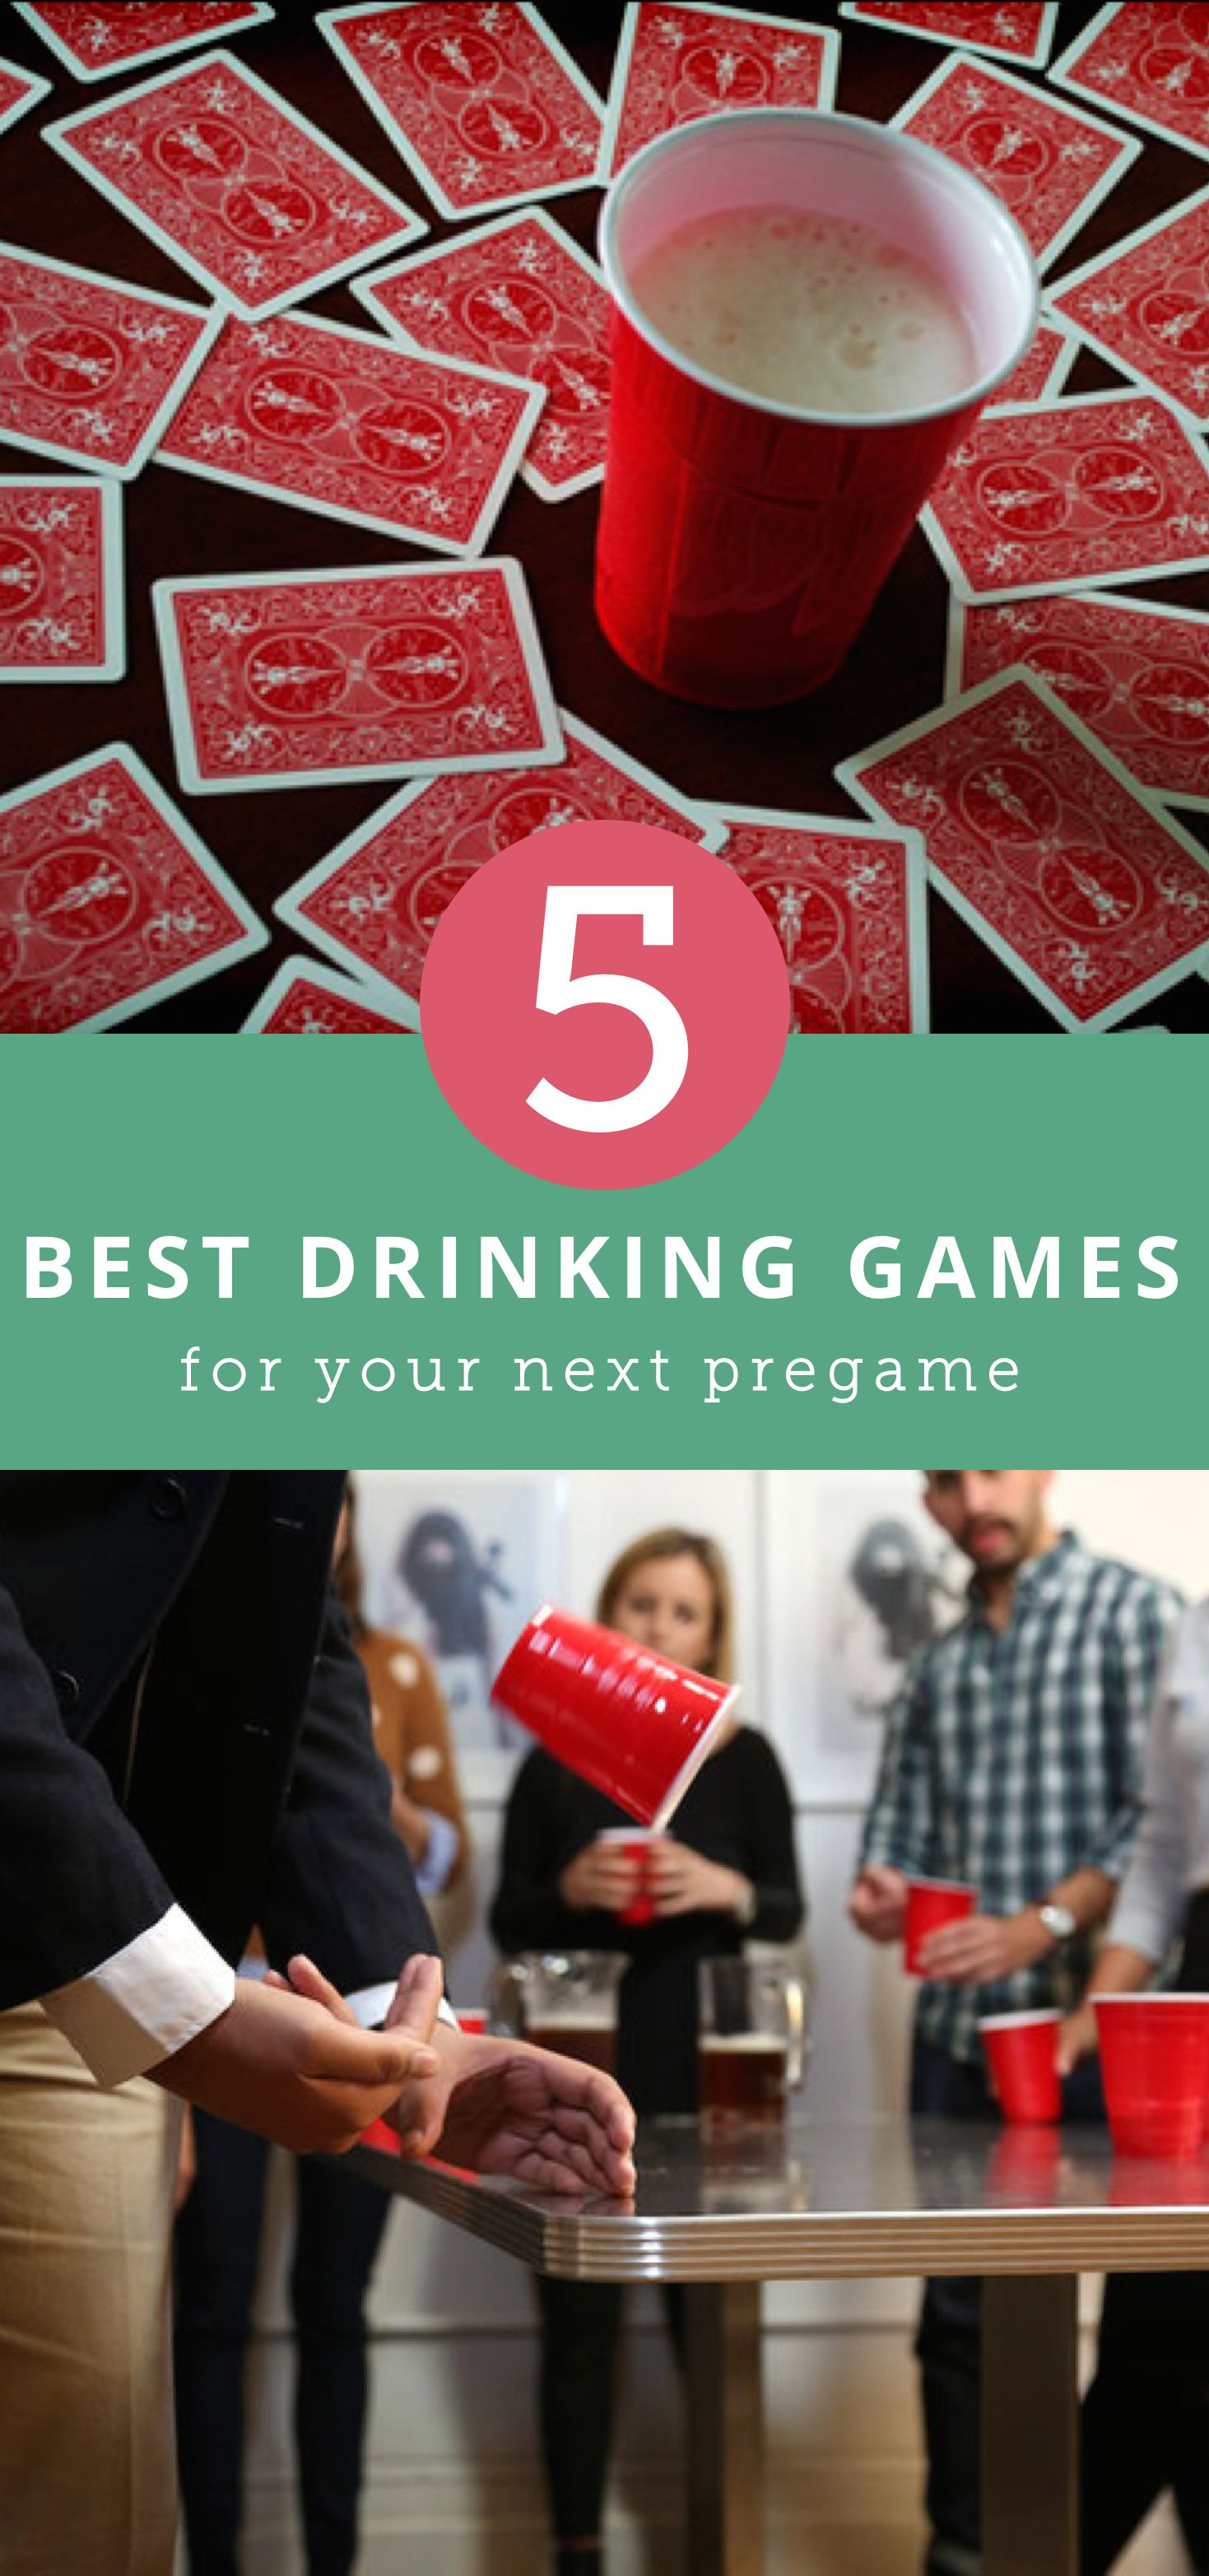 The 5 Best Drinking Games To Play If You Re Pregaming Fiestaaaaaa